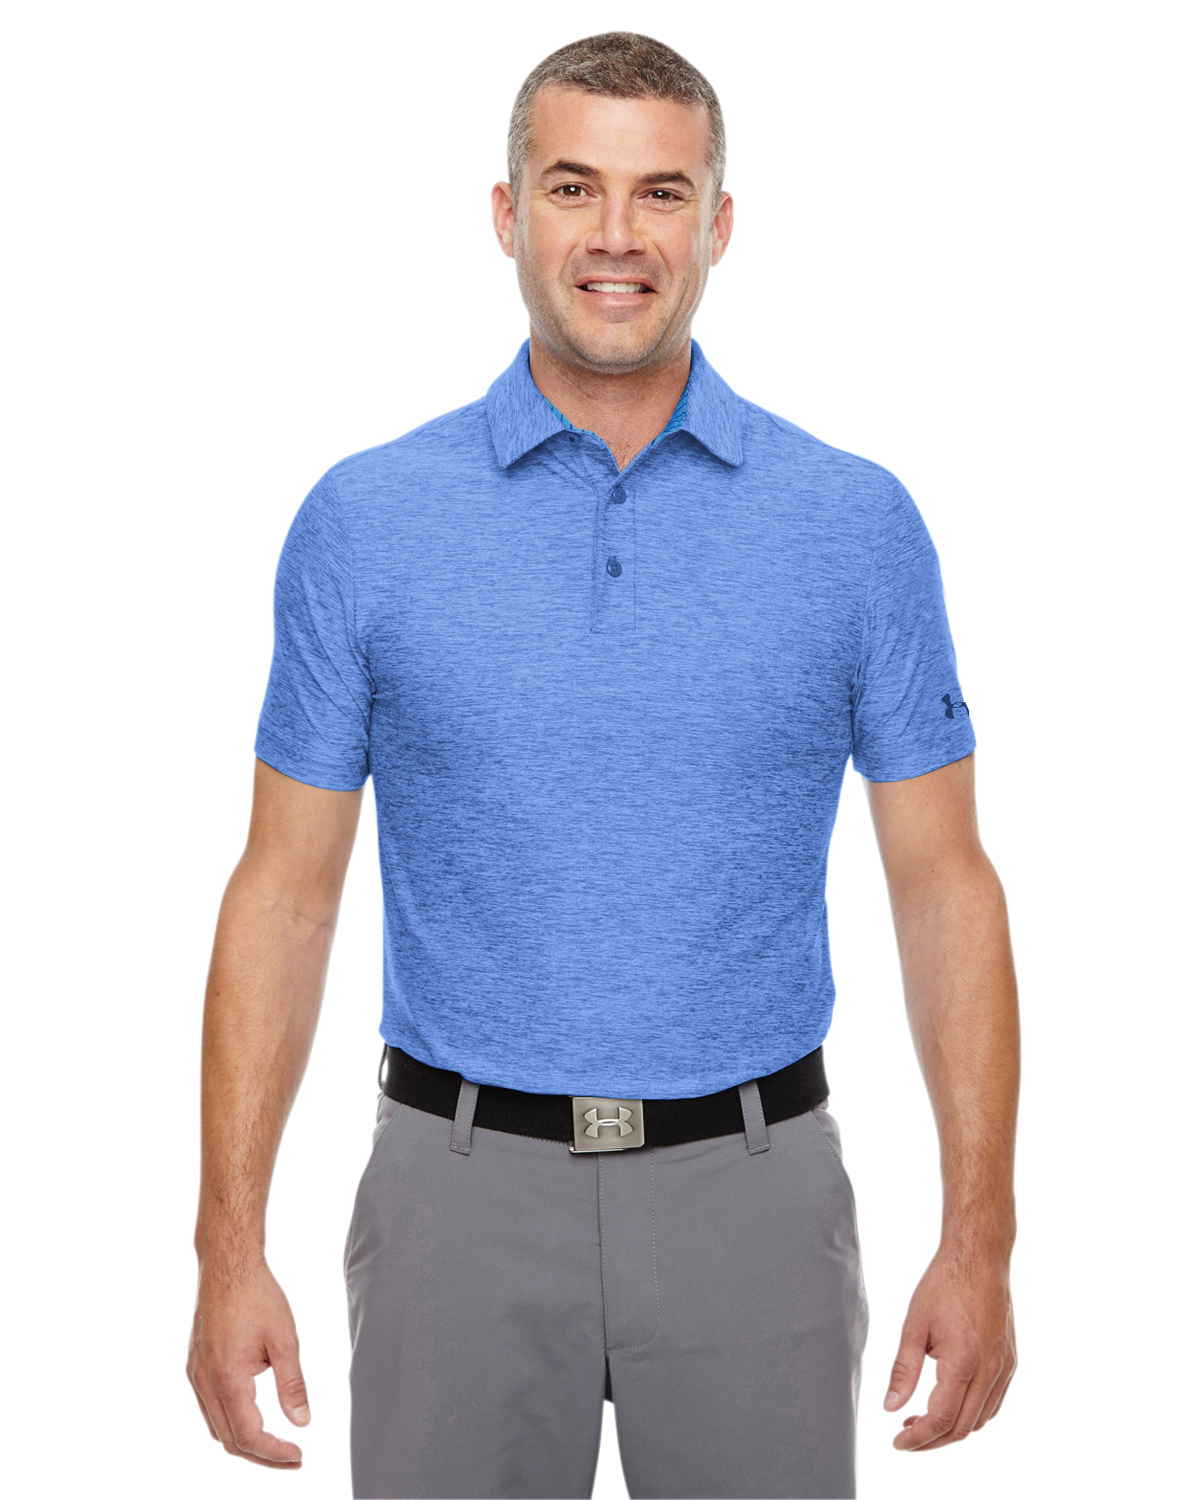 Under Armour 1283705 - Men's Playoff Polo